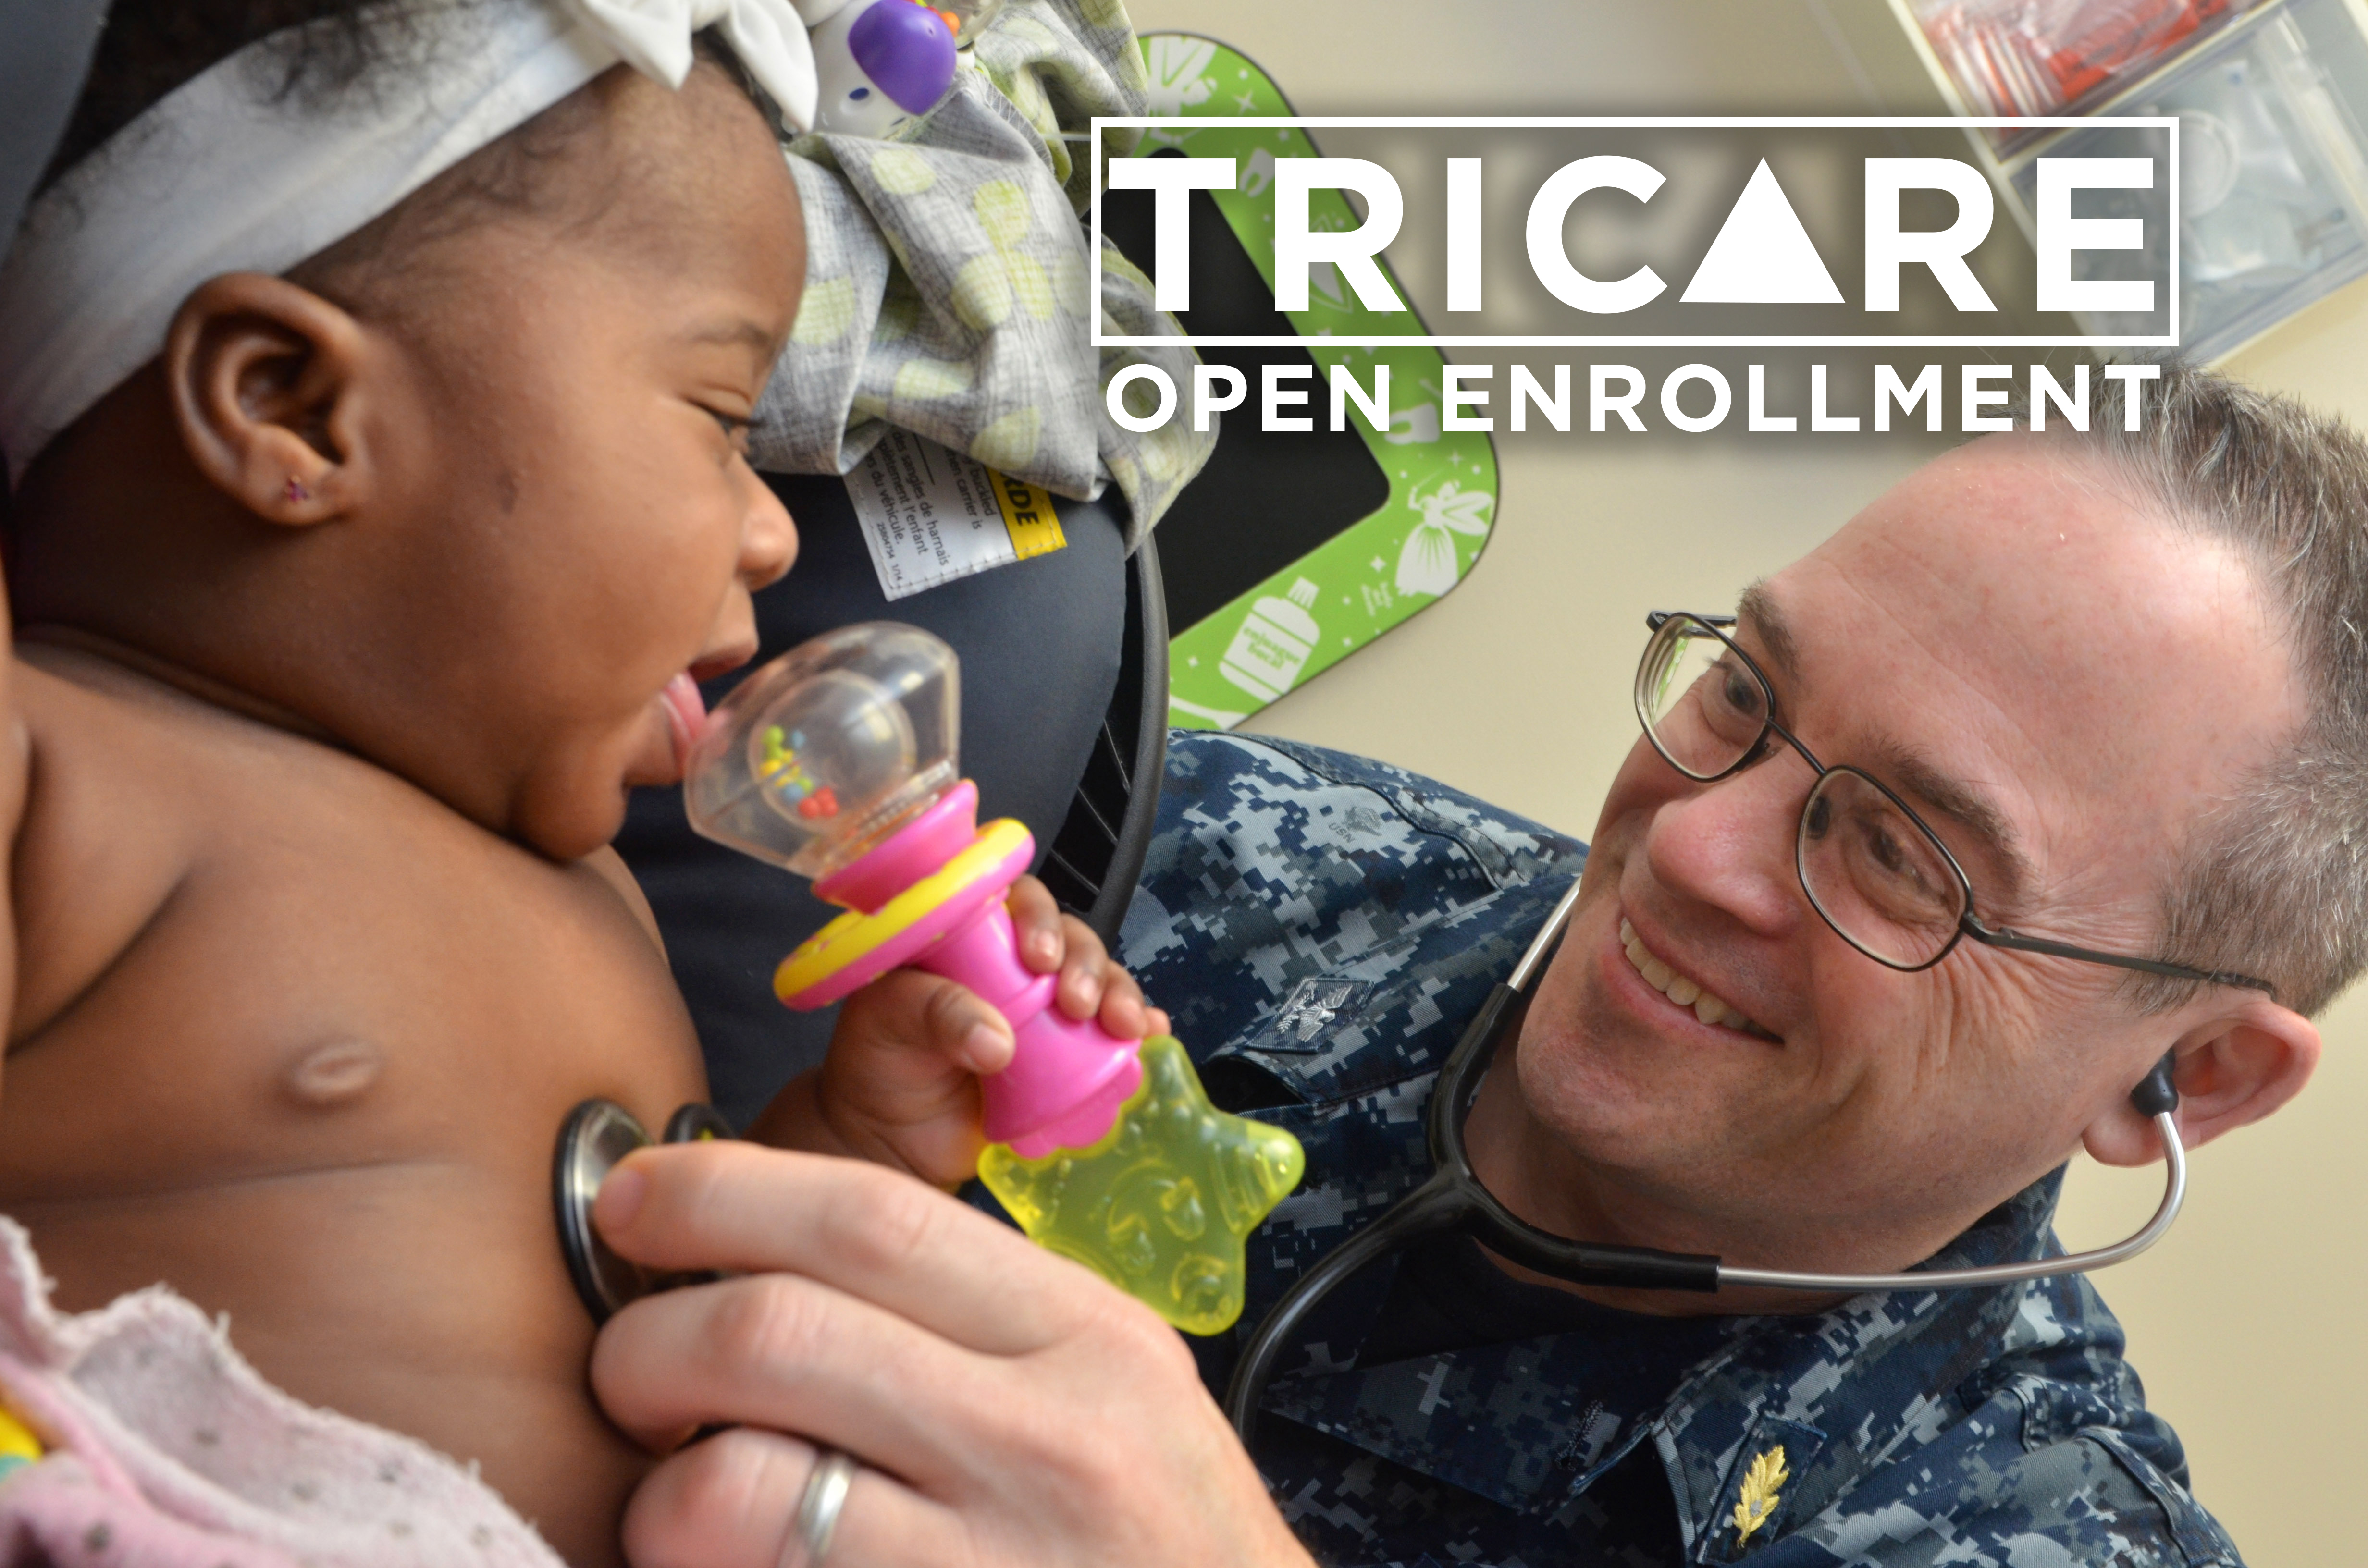 Don't Get Locked In: TRICARE's First Ever Open Enrollment Period Begins November 12